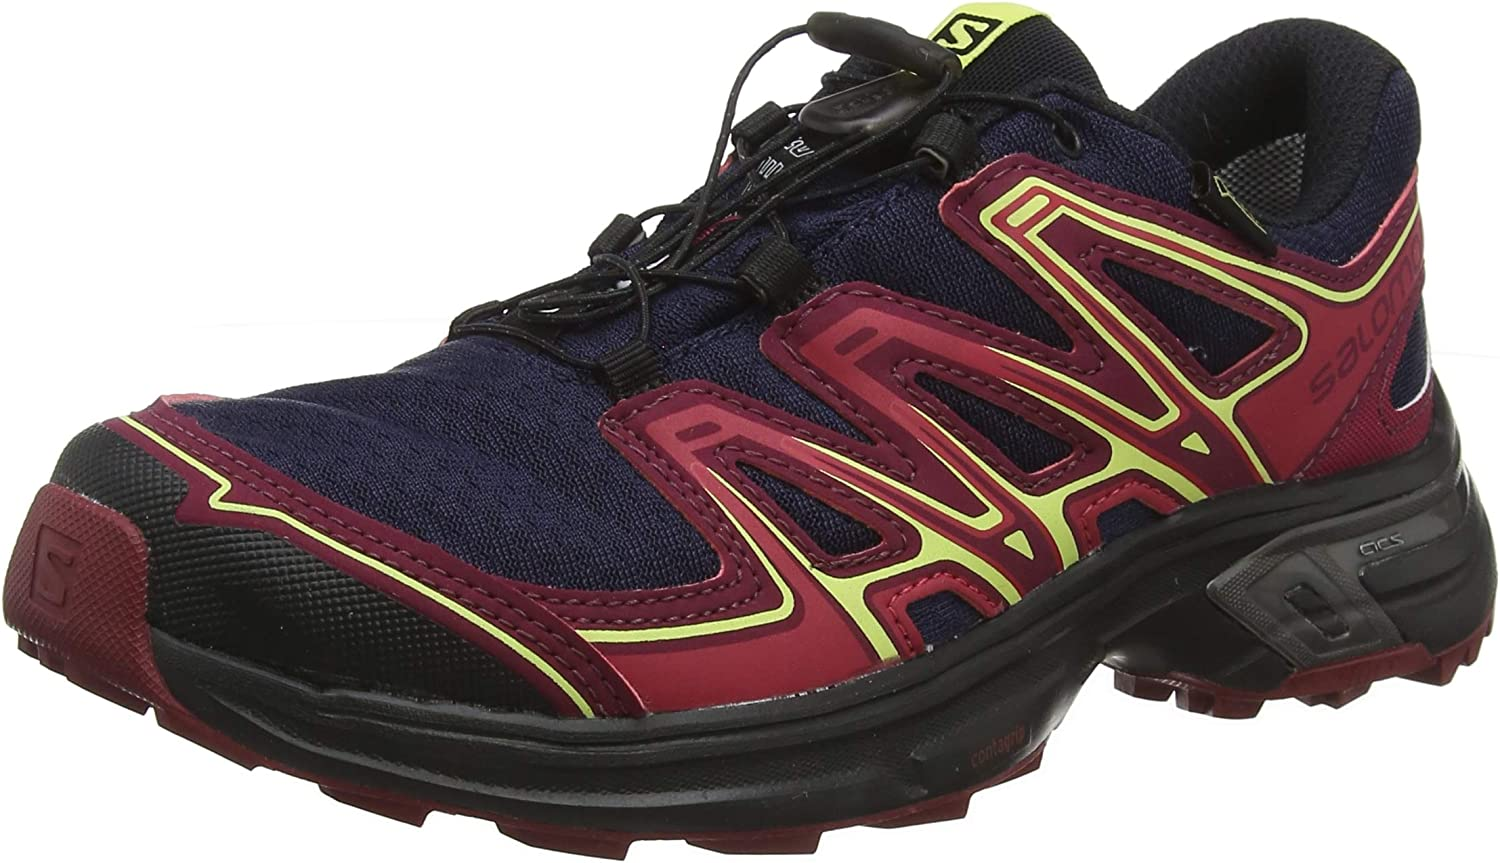 Details about Salomon Wings Flyte 2 GTX, Men's Trail Running Shoes BlackFiery RedRed Dalhia